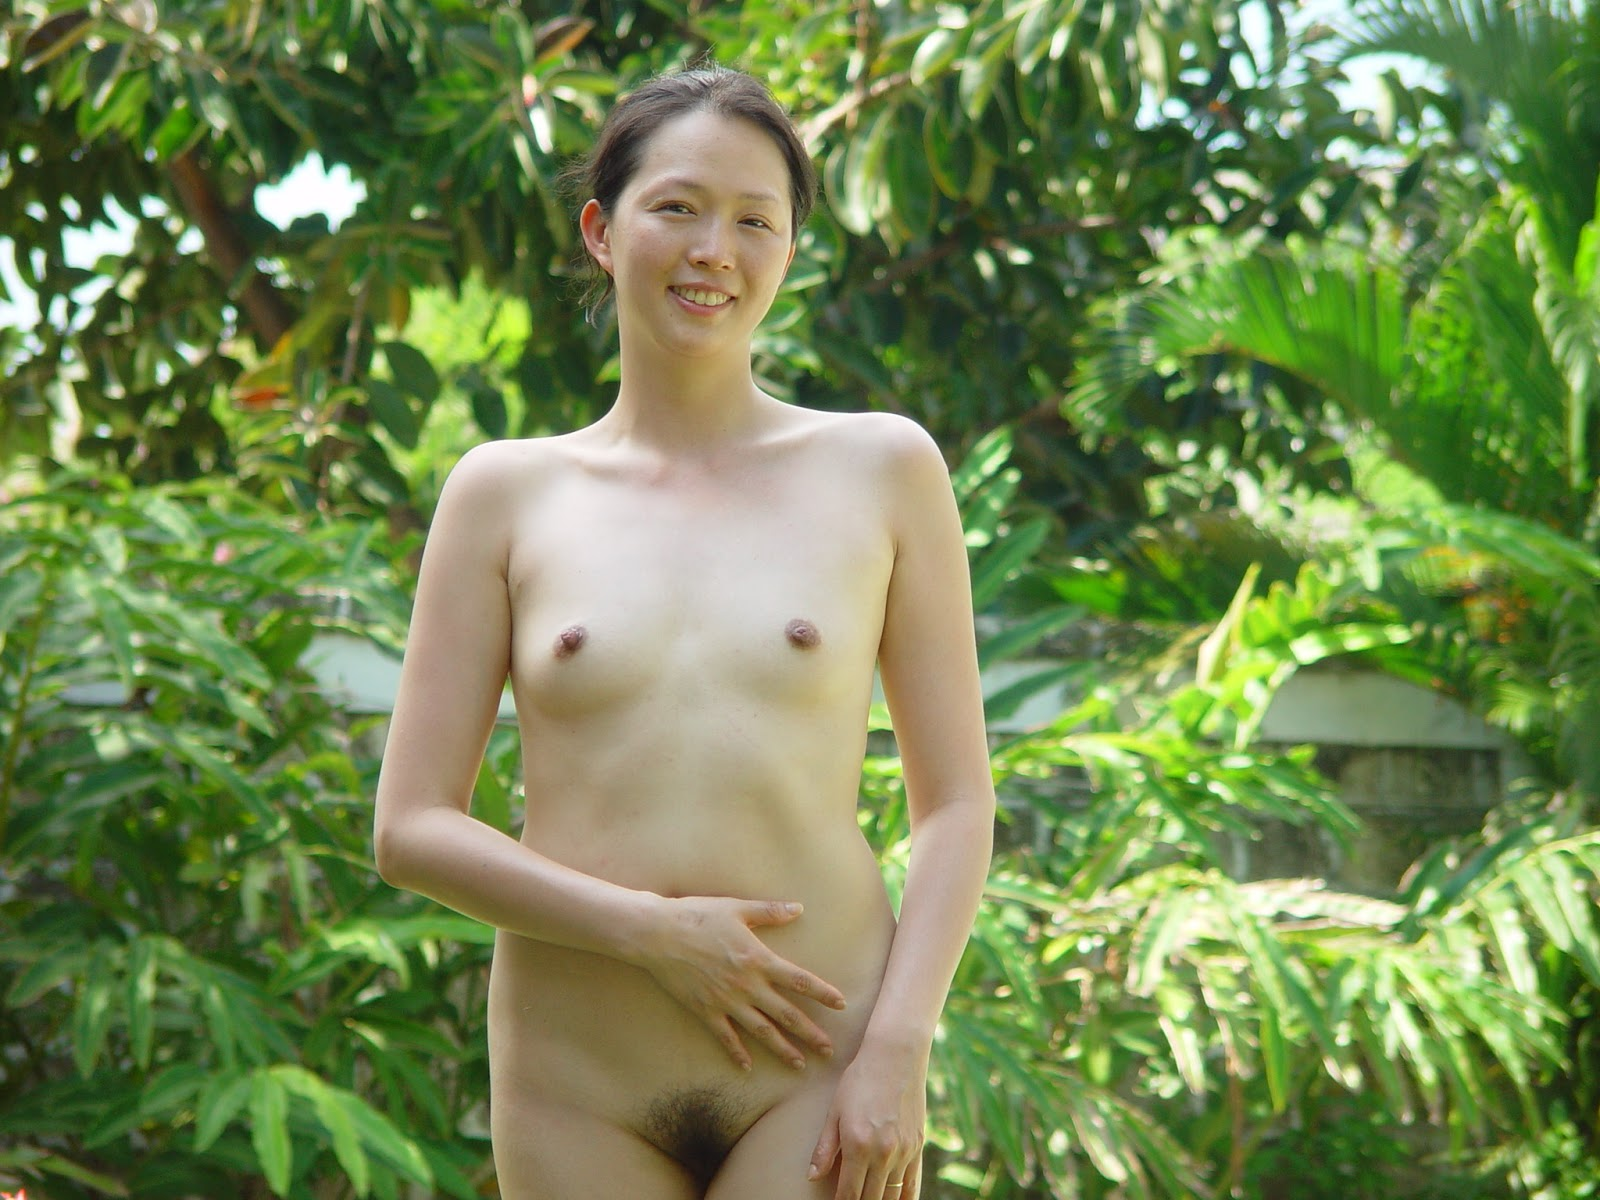 My korea wife nude